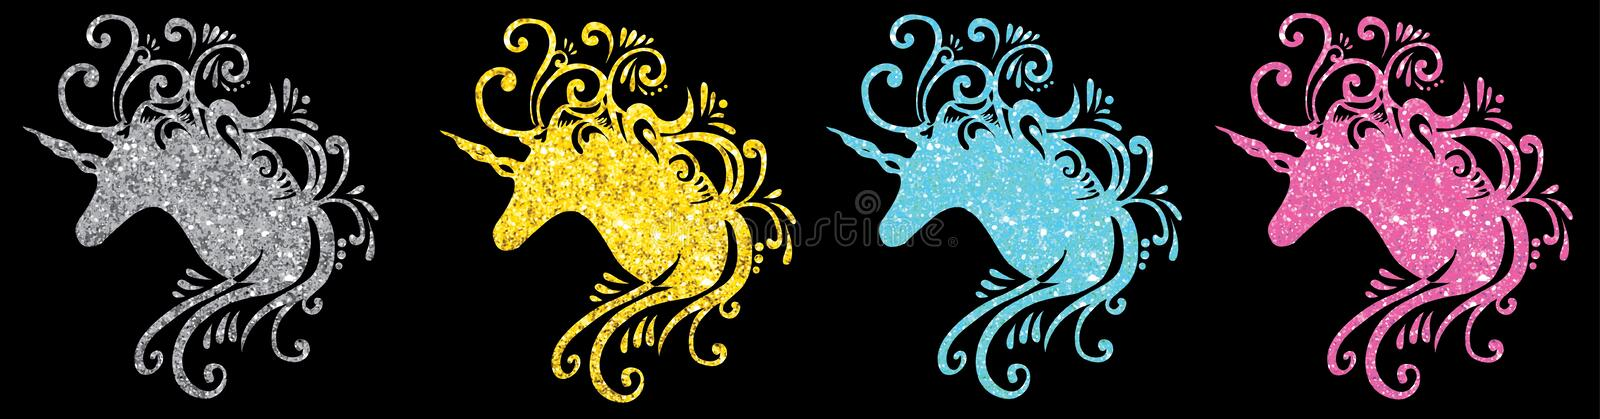 Glitter unicorn head silhouette set unicorn vector pictures eps unicorn jpg pink unicorn clip art cute unicorn einhorn pegasus 2d vector illustration